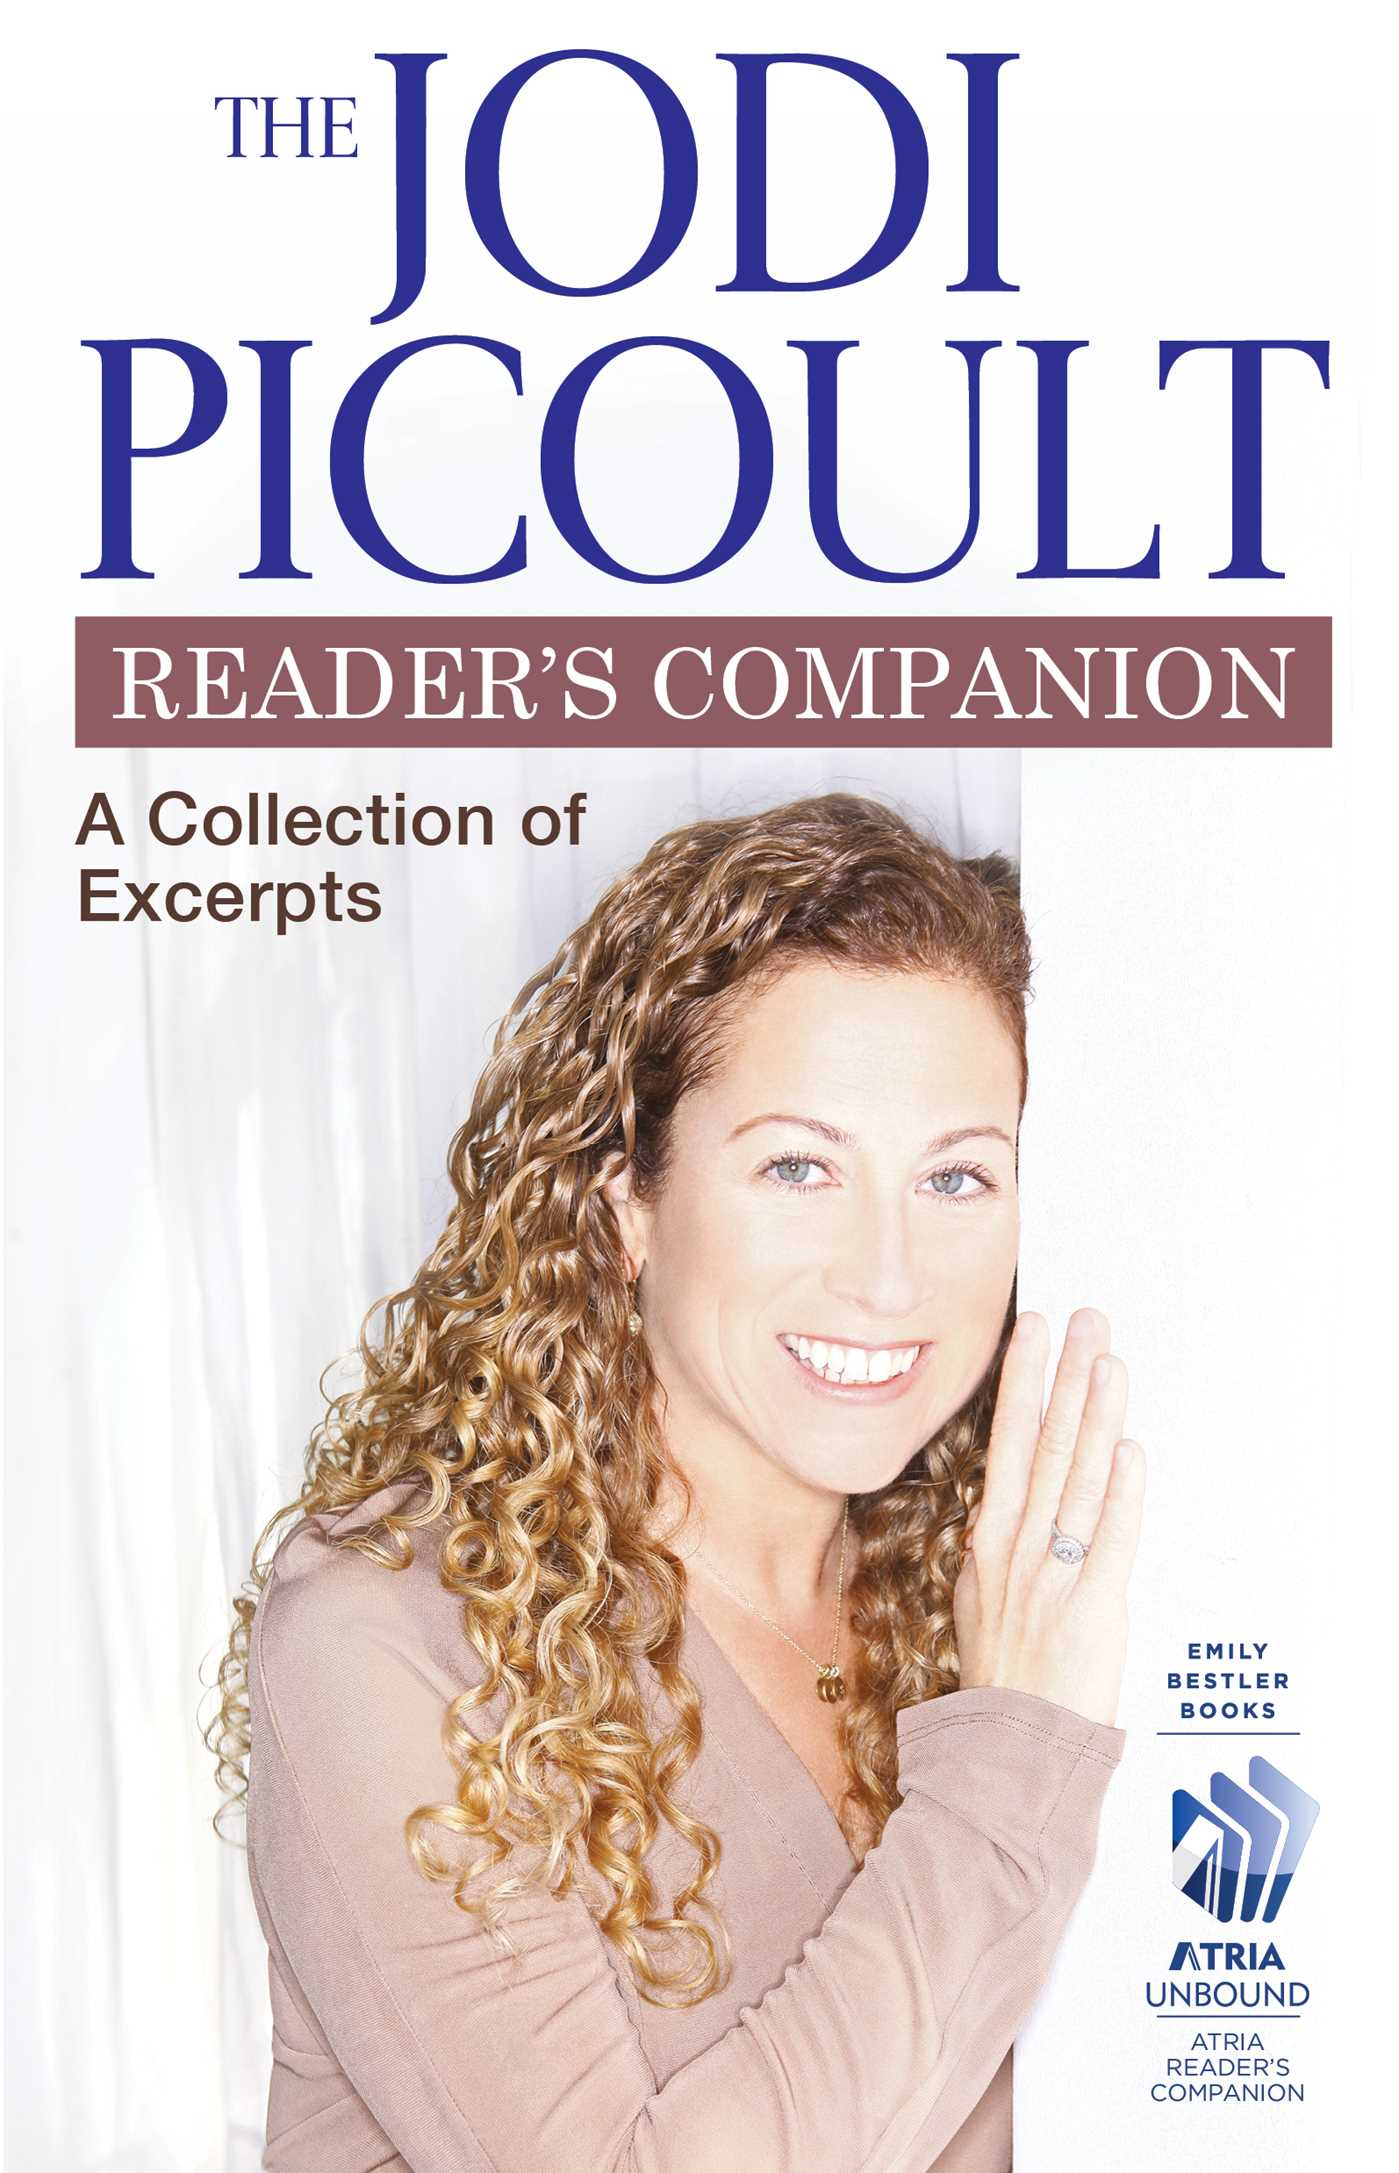 jodi picolt The storyteller is the twentieth novel written by the author jodi picoult.